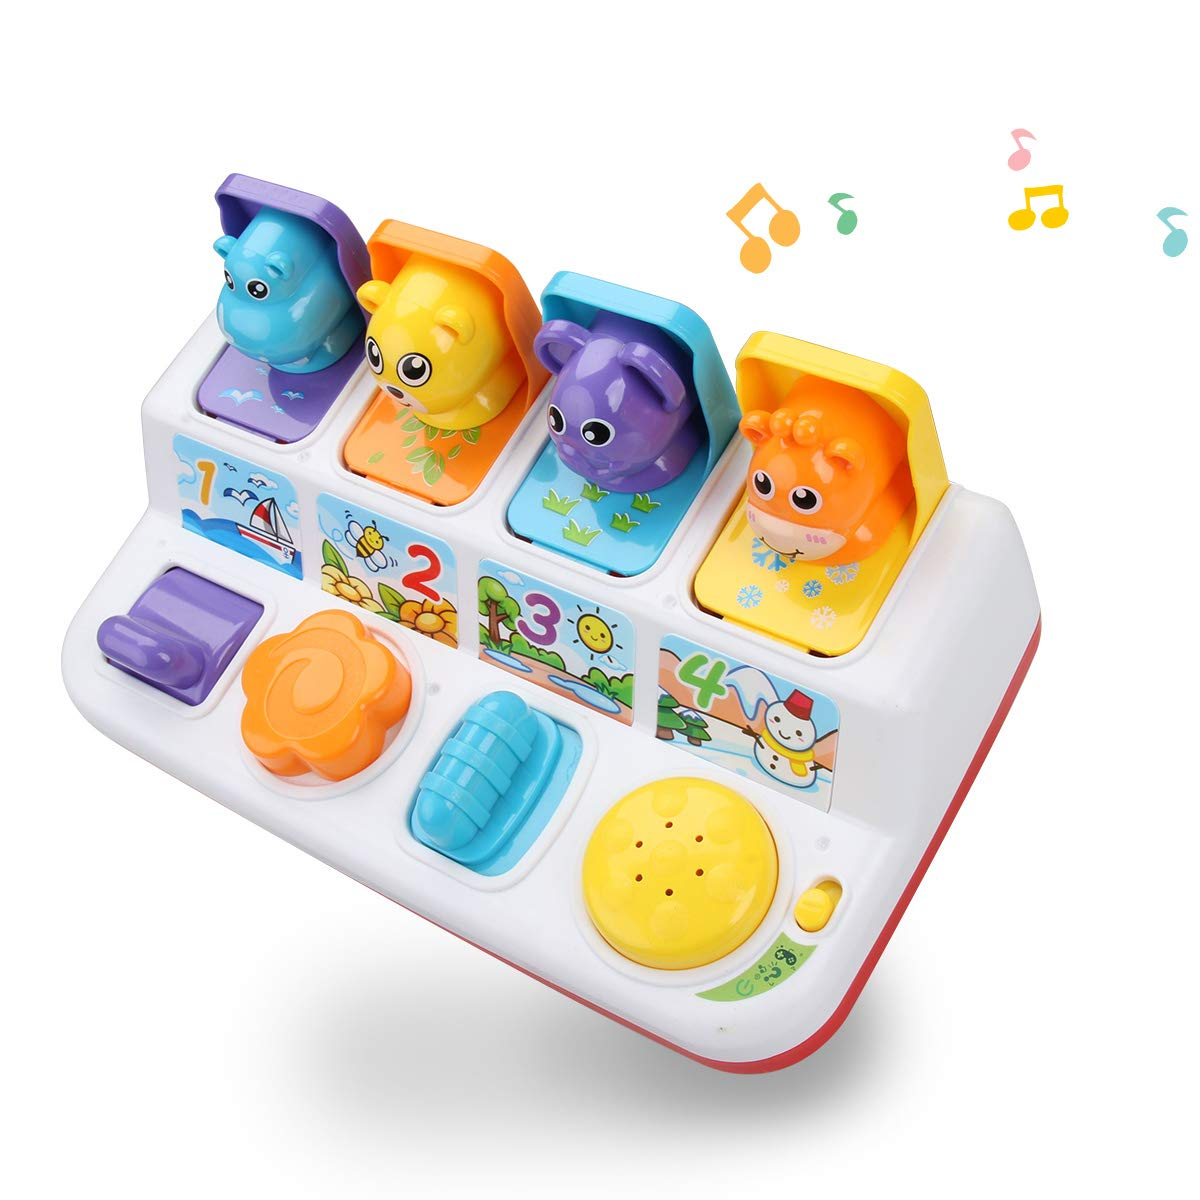 FS Interactive Pop Up Animals Toy with Light, Music, Animal Sound, Pop-up Activity Toys as Gifts for Ages 9-12-18 Months Toddlers & 1 Year Old Kids, Babies, Boys&Girls